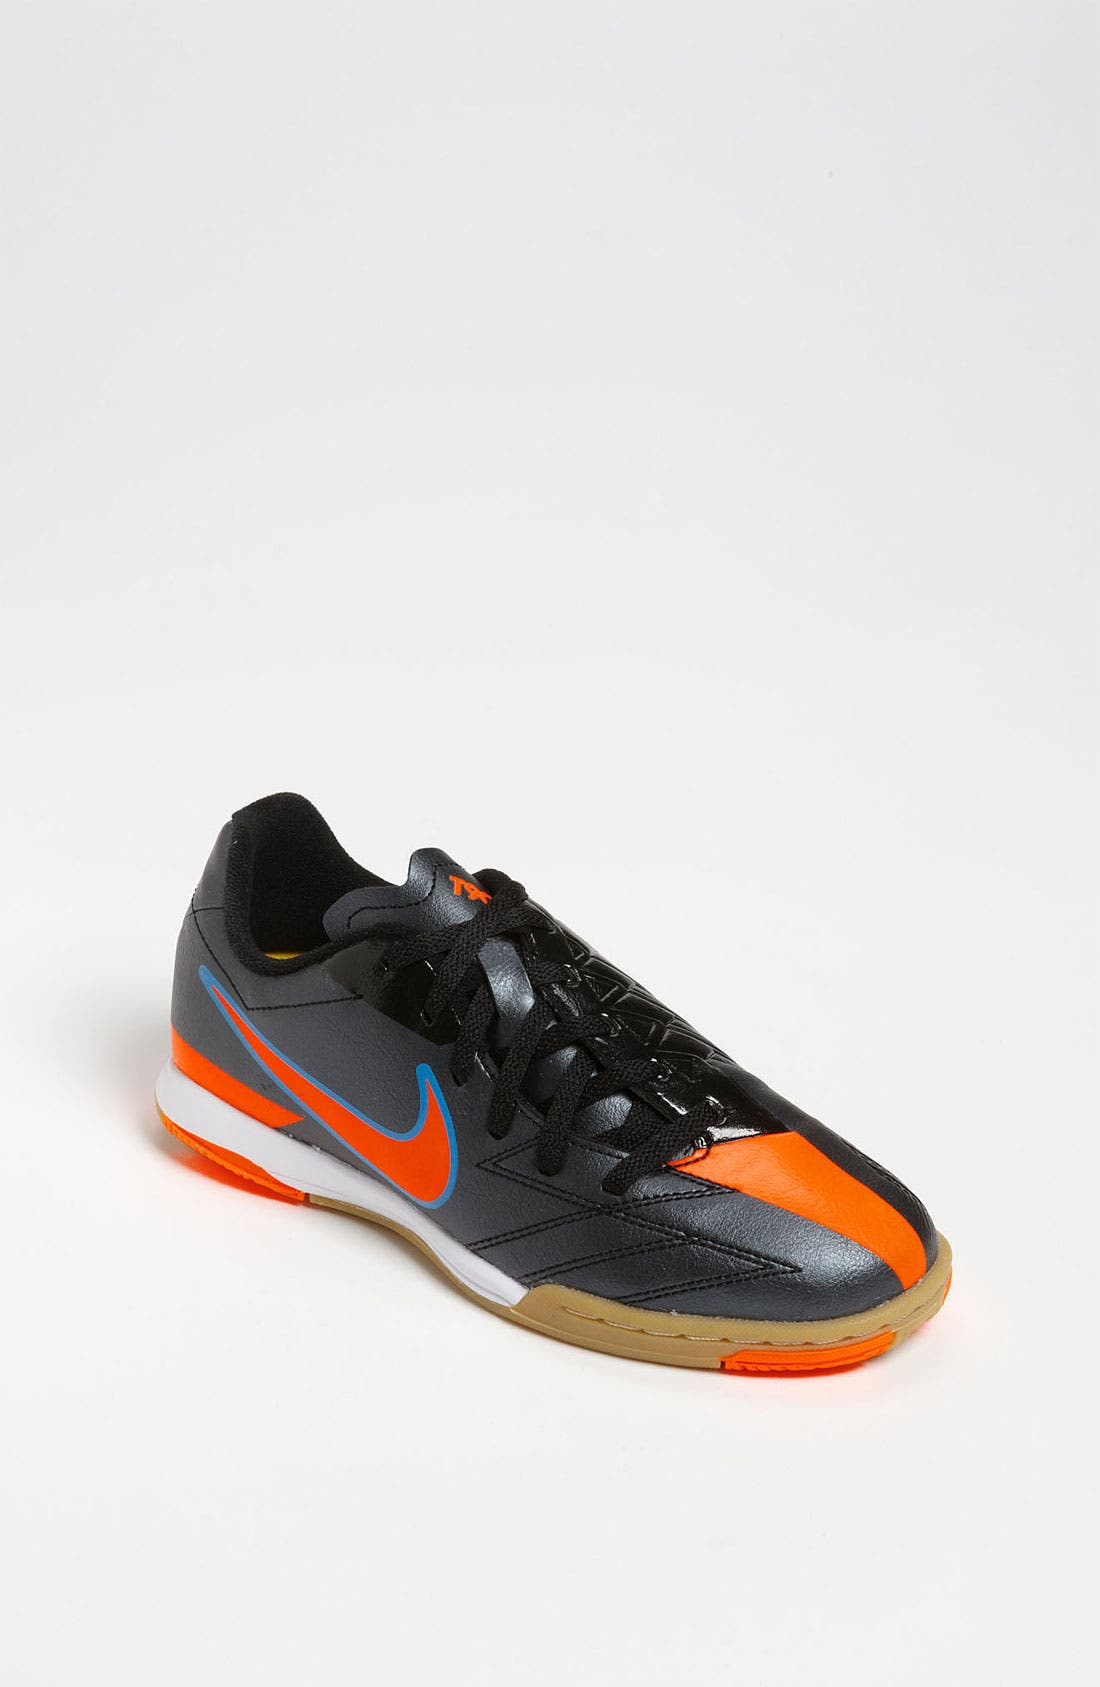 Main Image - Nike 'T90 Shoot IV' Soccer Shoe (Toddler, Little Kid & Big Kid)